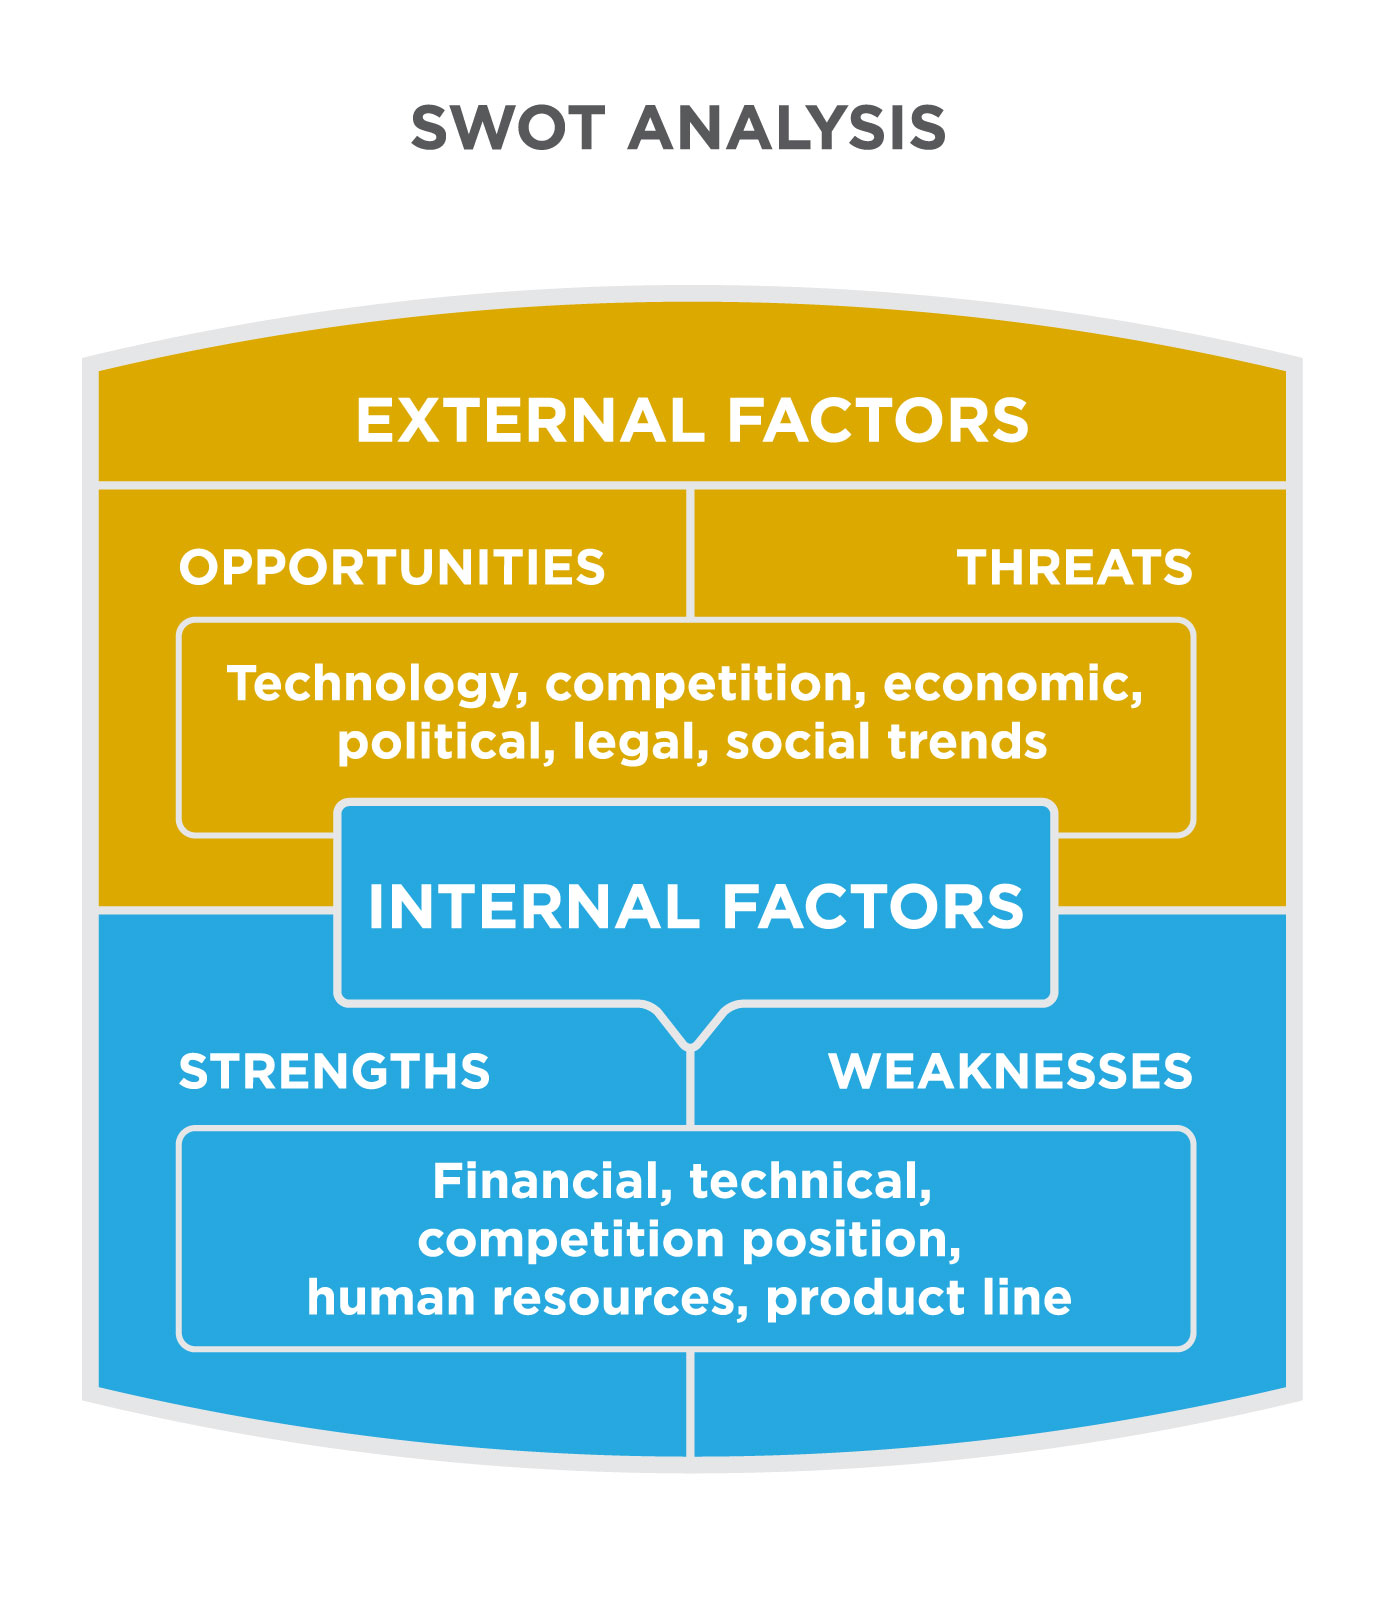 internal analysis and swot analysis A swot analysis is a high-level strategic planning model that helps organizations identify where they're doing well and where they can improve, both from an internal and external perspective.